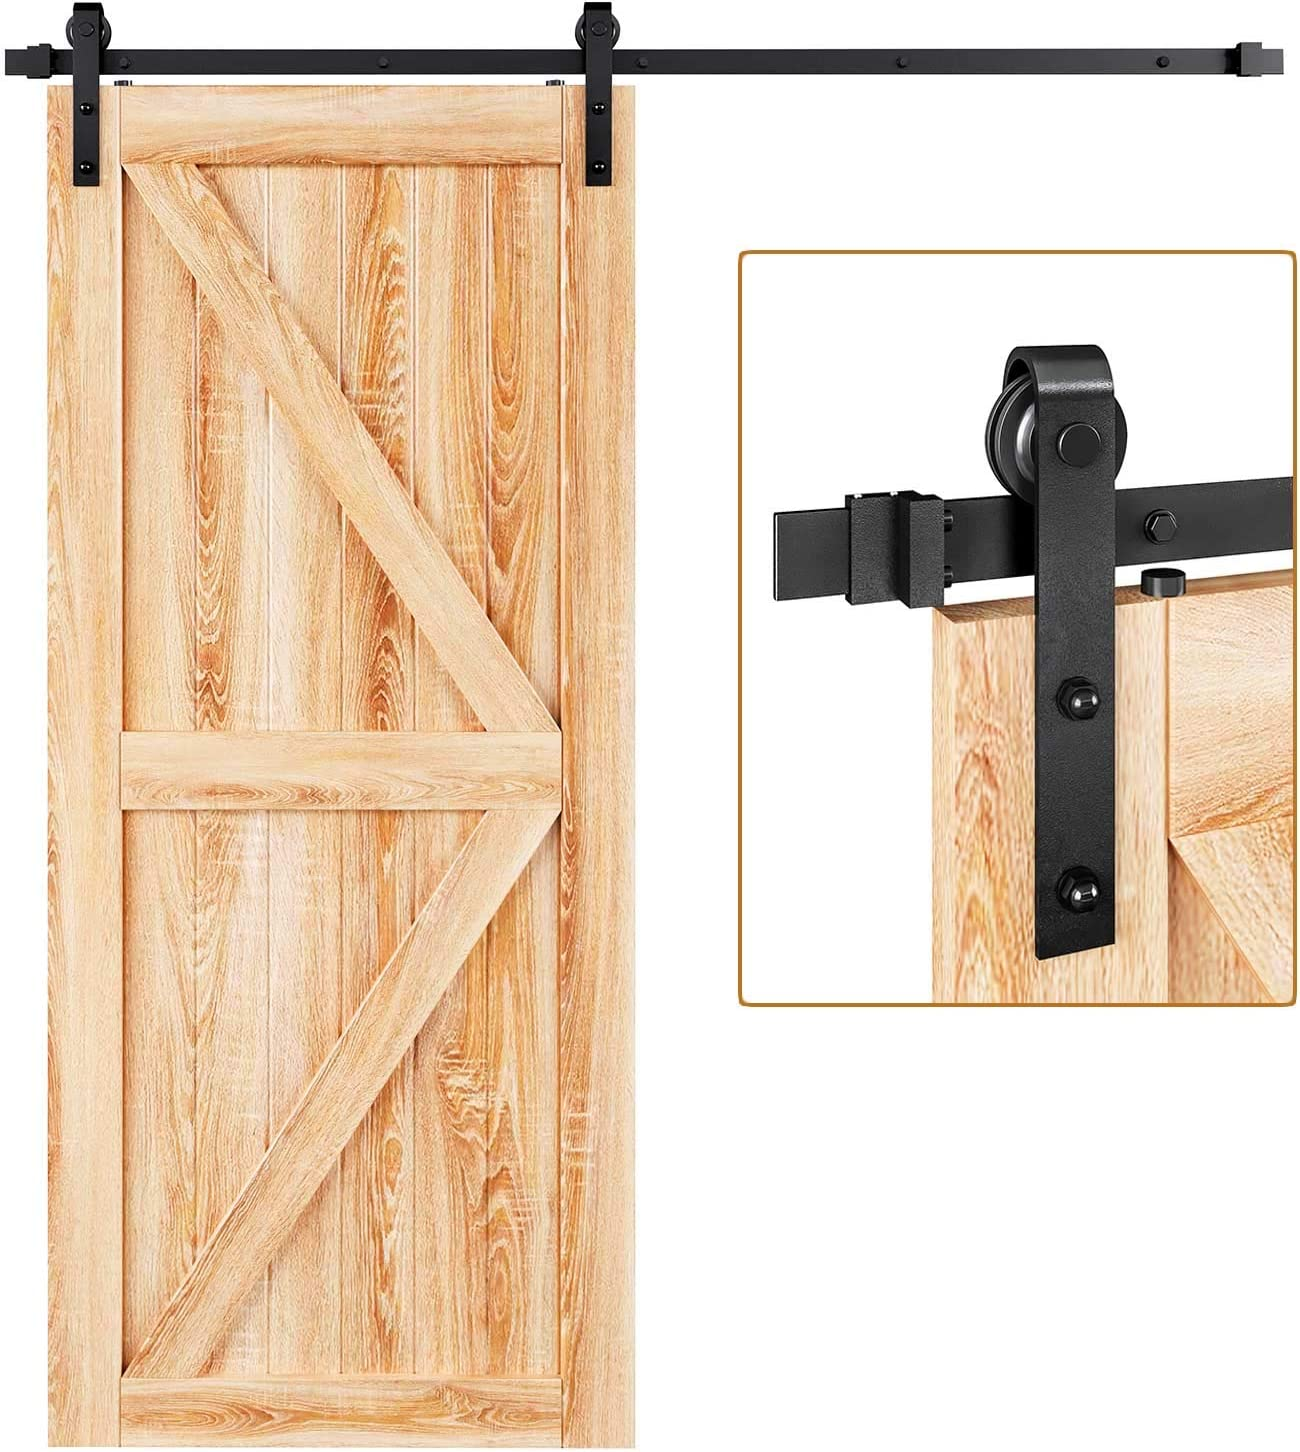 "EaseLife 6.6 FT Heavy Duty Sliding Barn Door Hardware Track Kit,Ultra Sturdy,Slide Smoothly Quietly,One Piece 6.6FT Track,Easy Install,Fit 36""~40"" Wide Door (6.6FT Track Single Door Kit)"